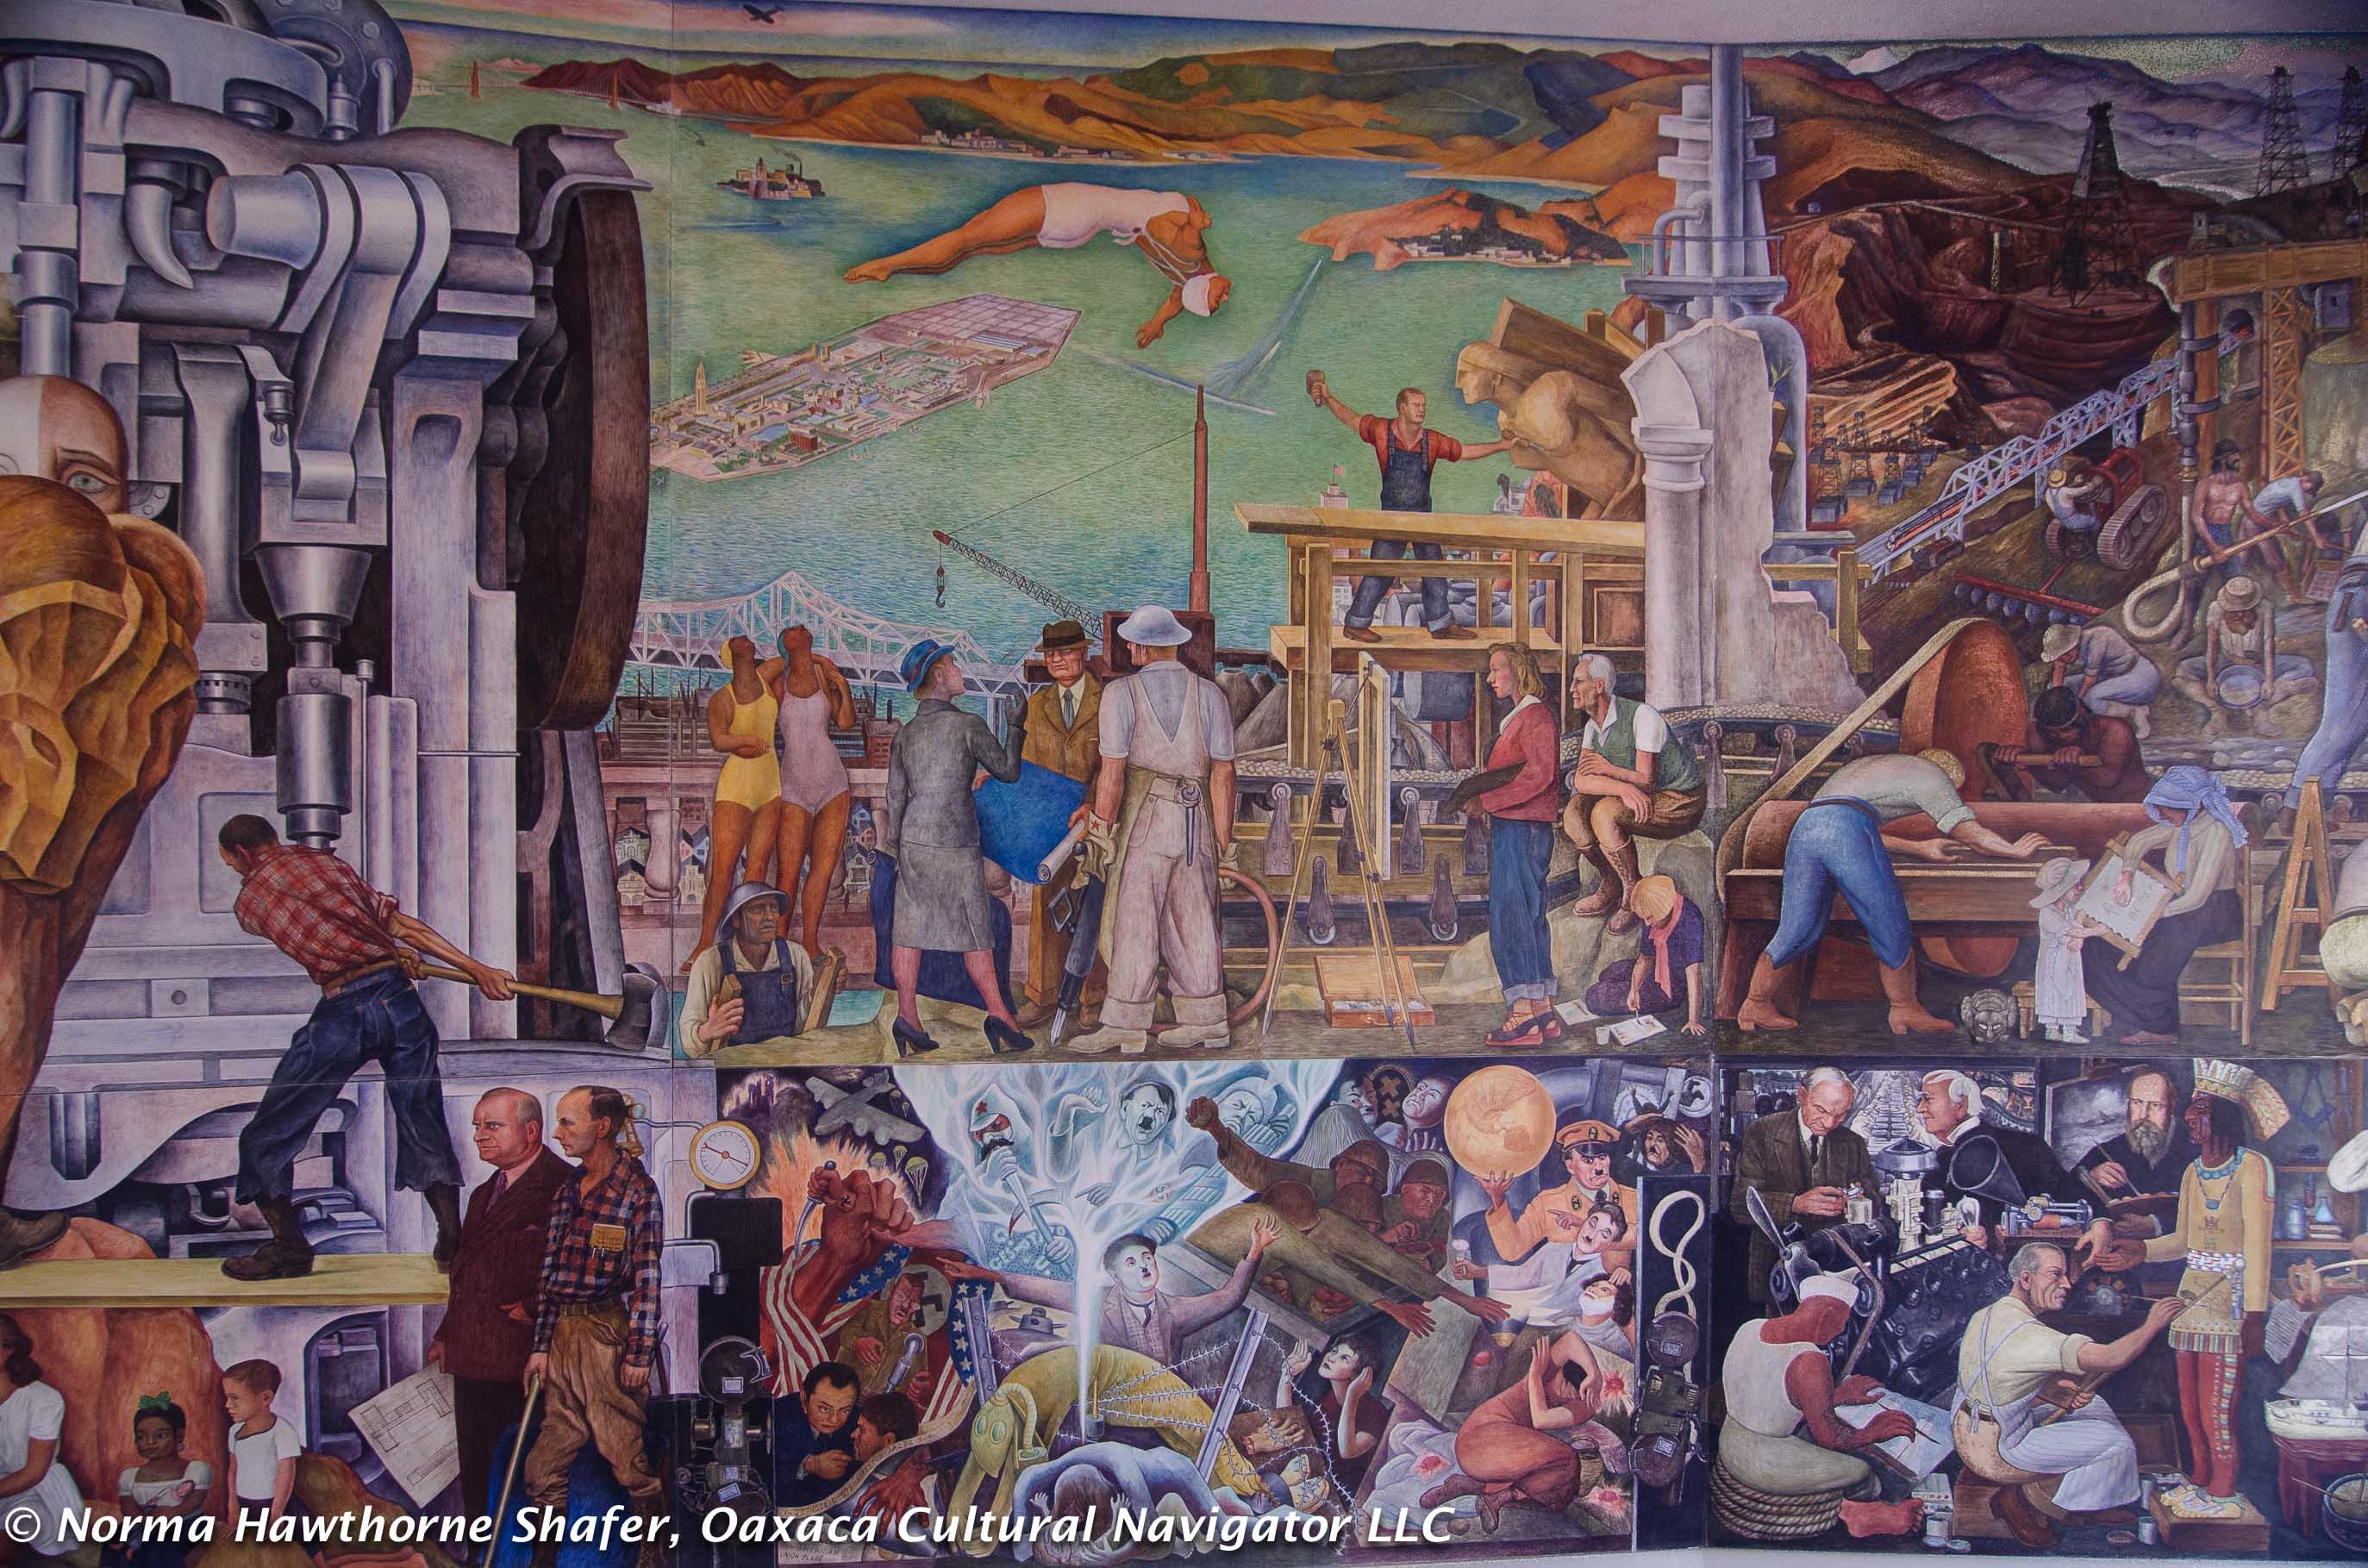 Frescoes oaxaca cultural navigator norma schafer for Diego rivera pan american unity mural